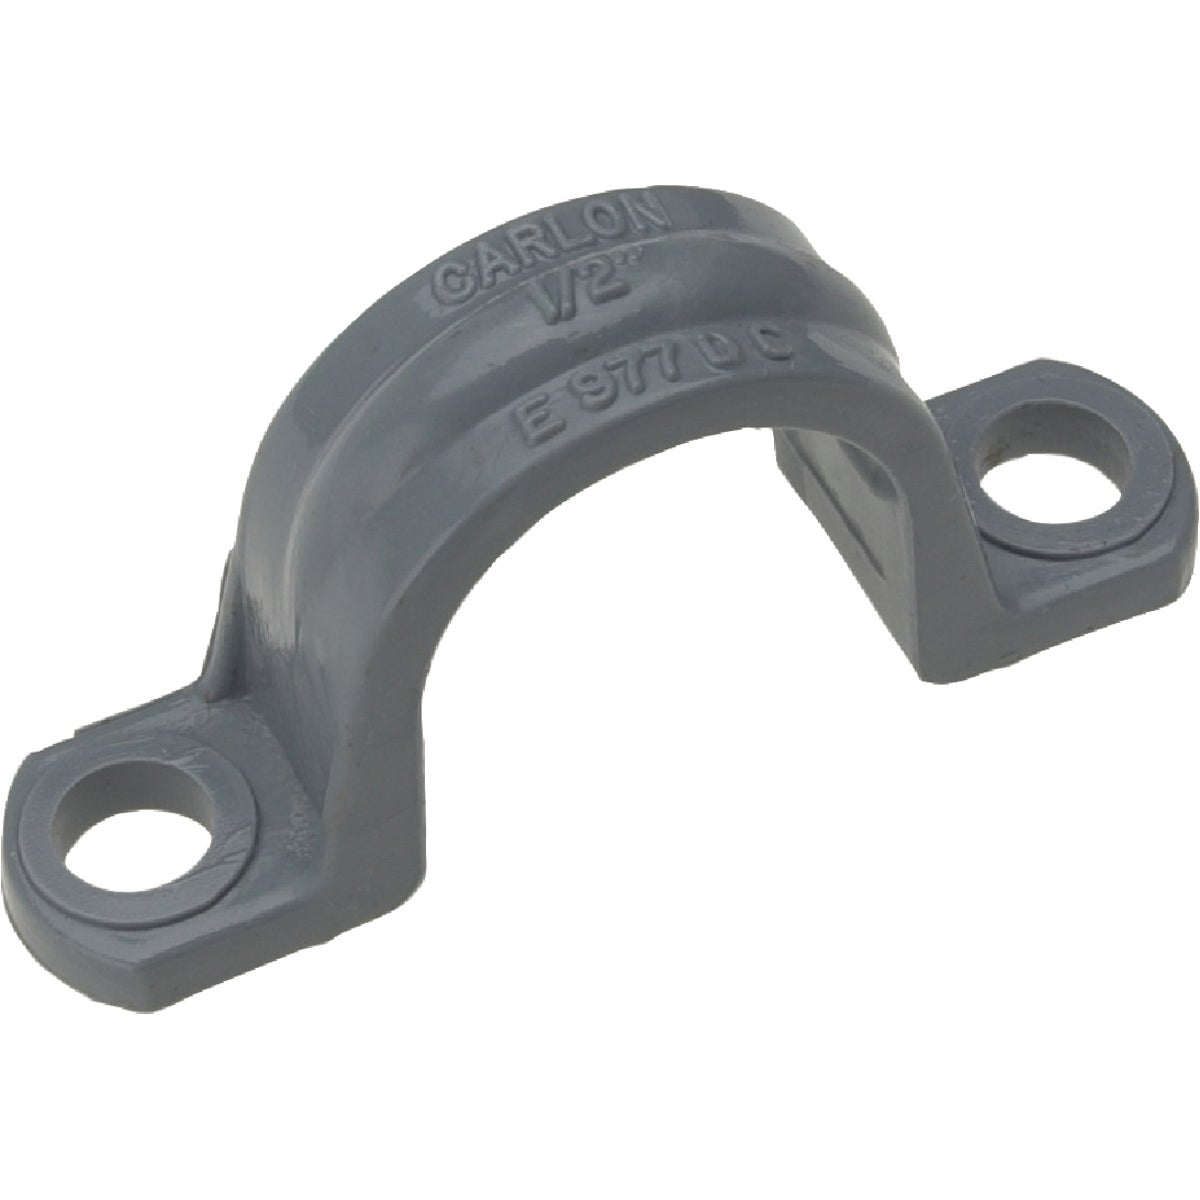 "5 PK 3/4"" PVC STRAP - E977ECCTN by Thomas & Betts"